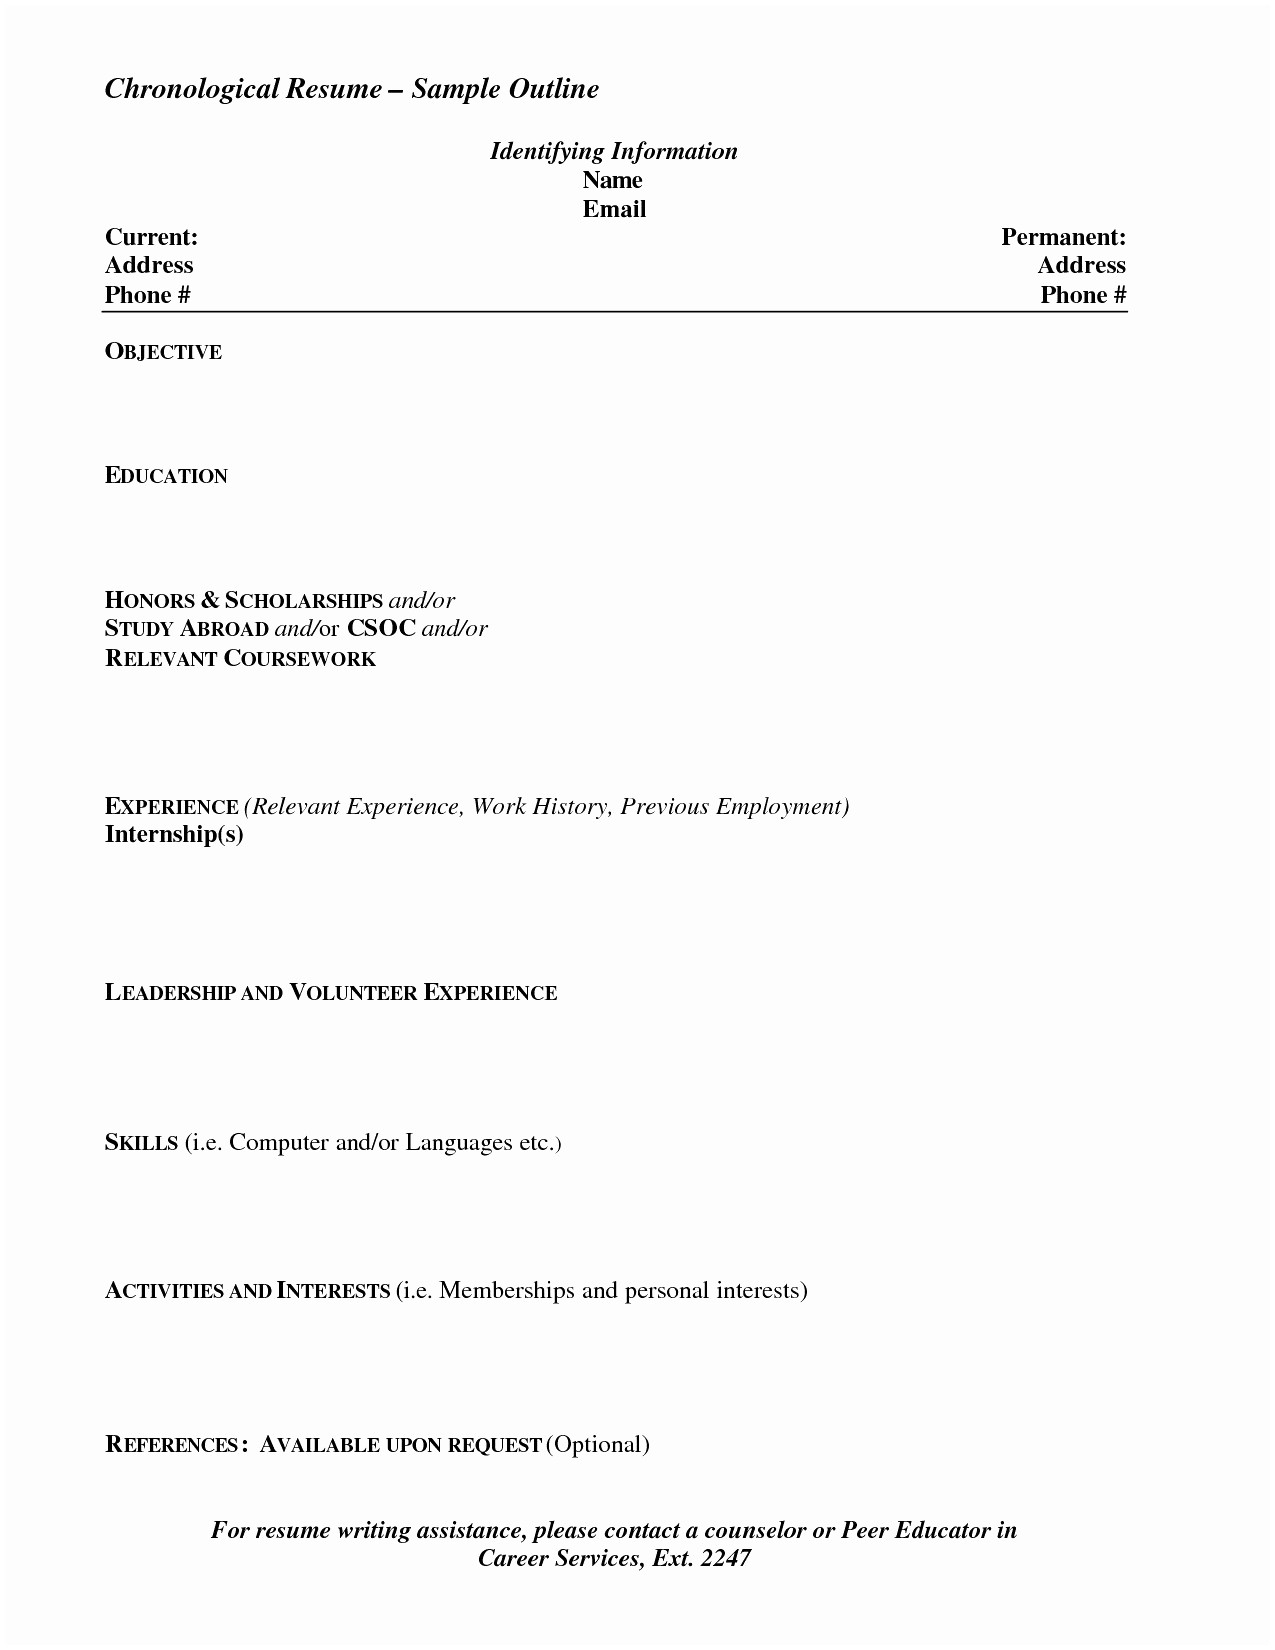 Letter Of Intent Template - Letter Intent to Purchase A Business